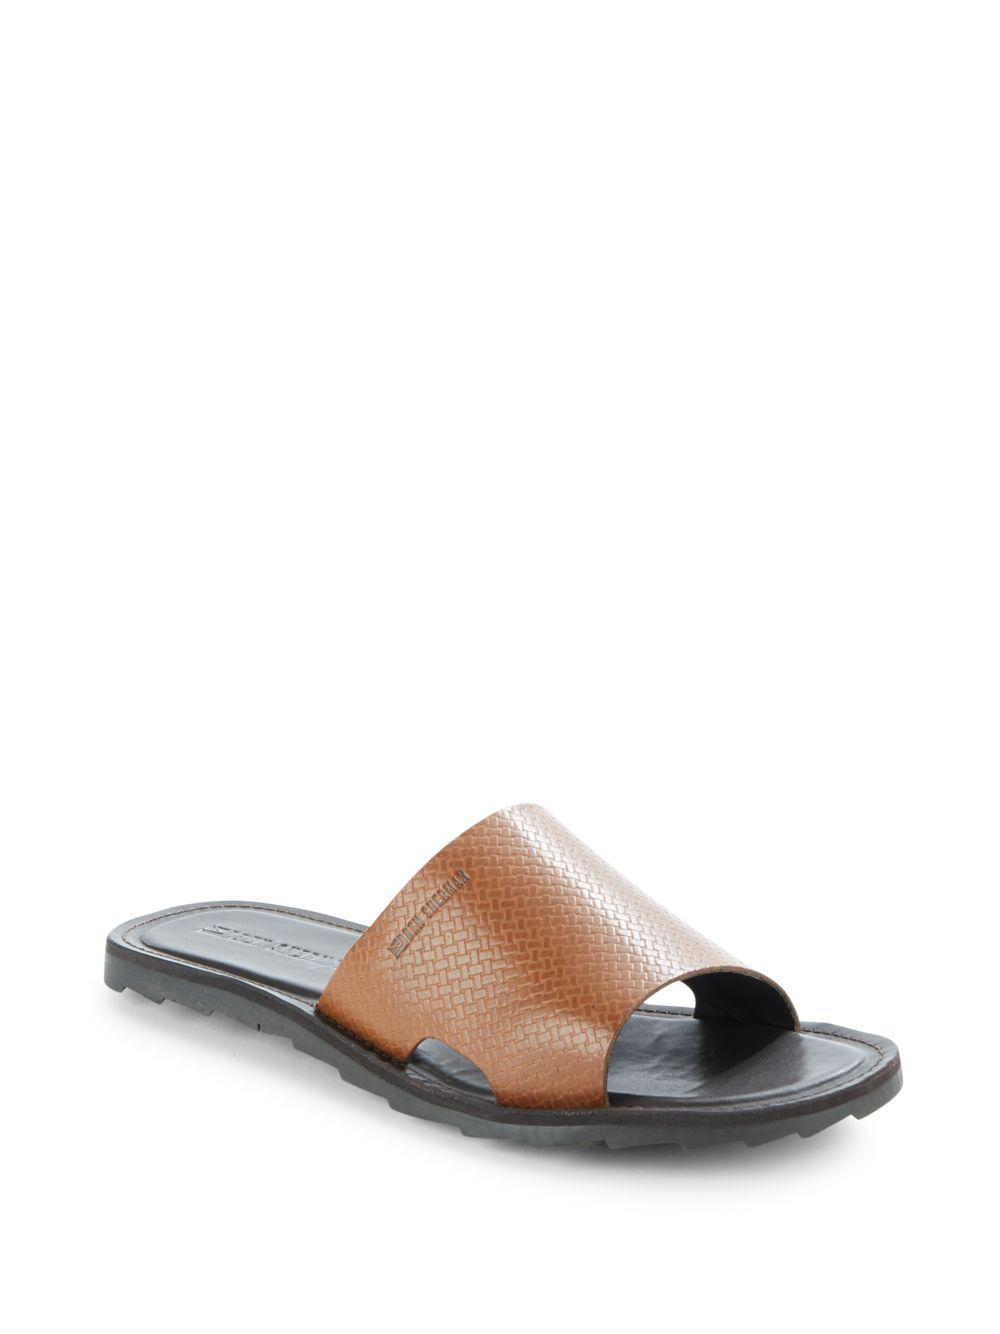 5b0ea23f61c Lyst - Ben Sherman Textured Leather Slide Sandals for Men